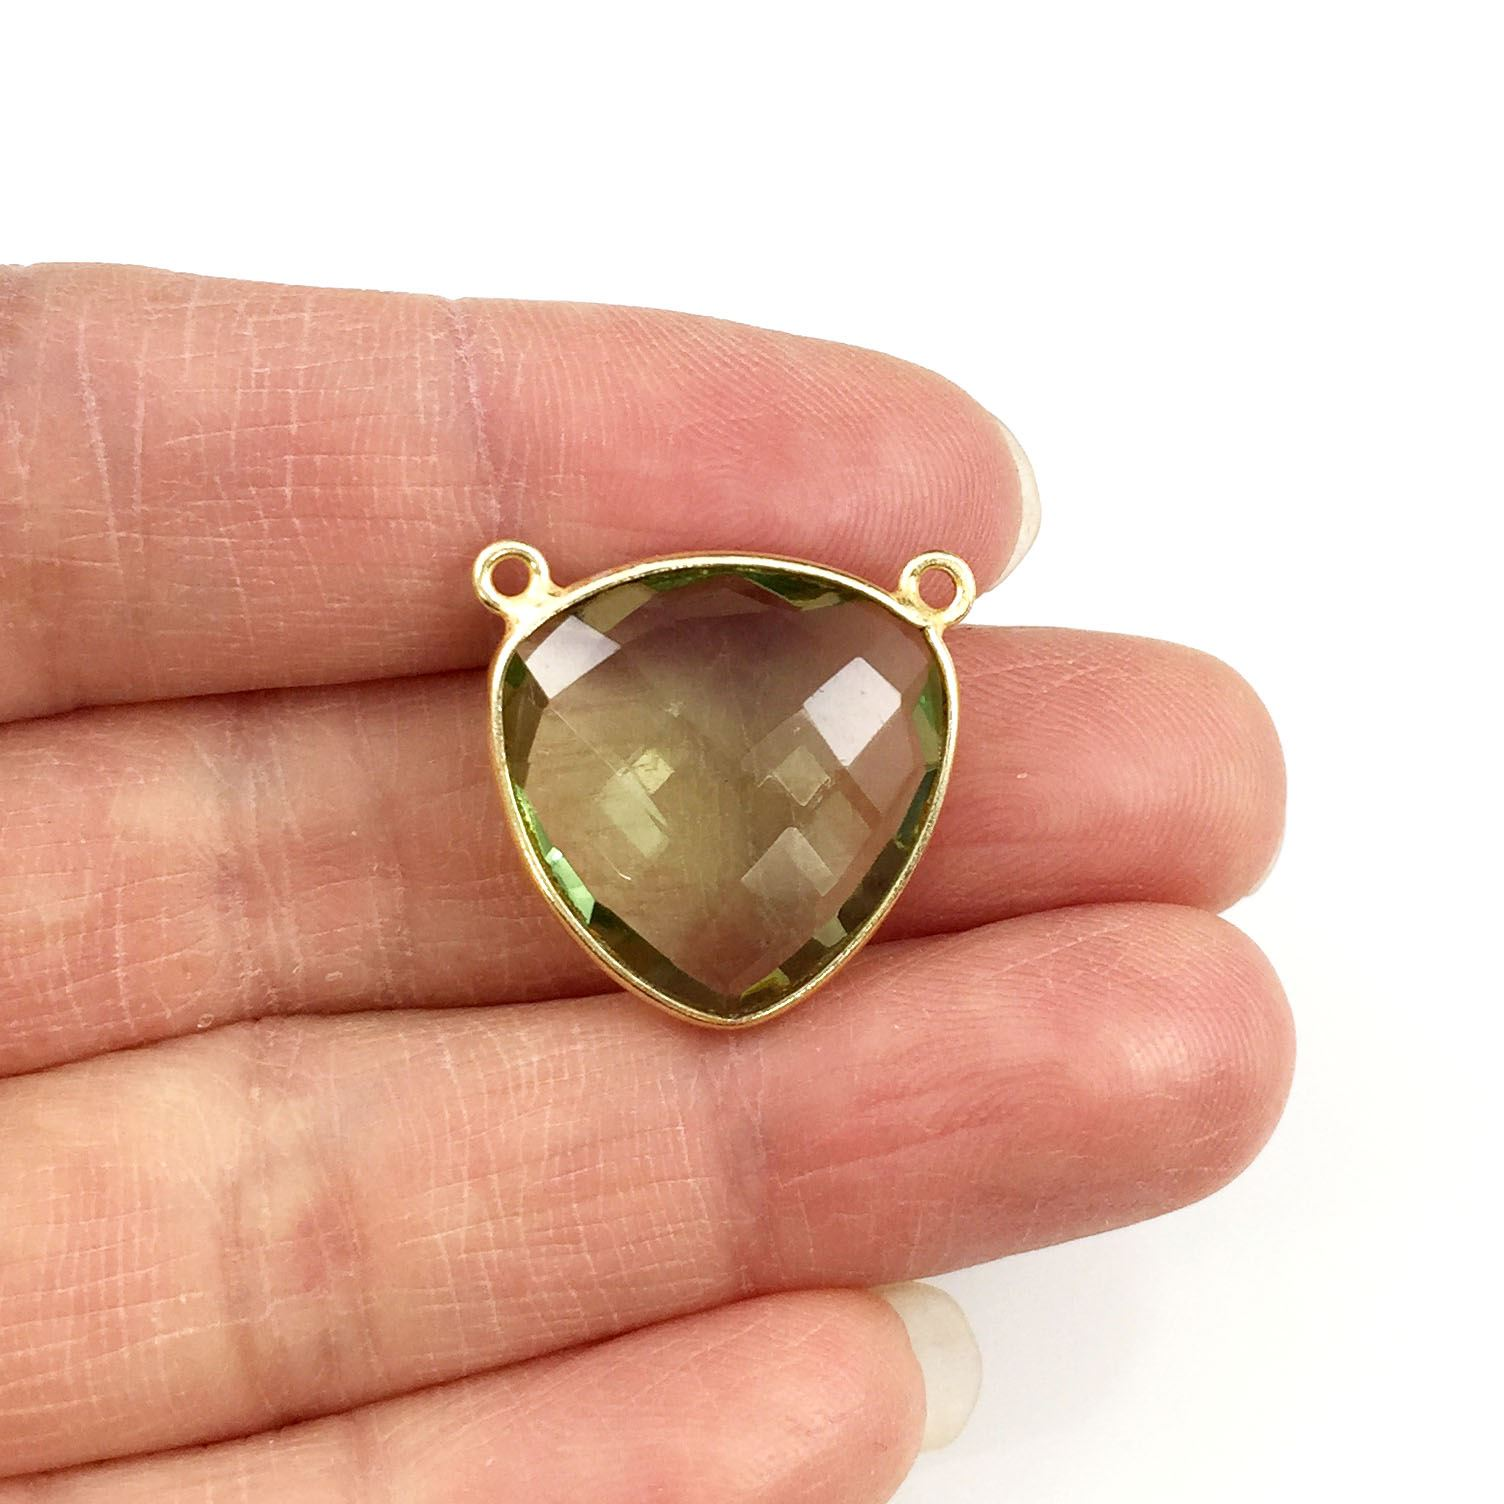 Bezel Gemstone Connector Pendant - Green Amethyst Quartz - Gold plated Sterling Silver - Large Trillion Shaped Faceted - 18 mm - 1 piece